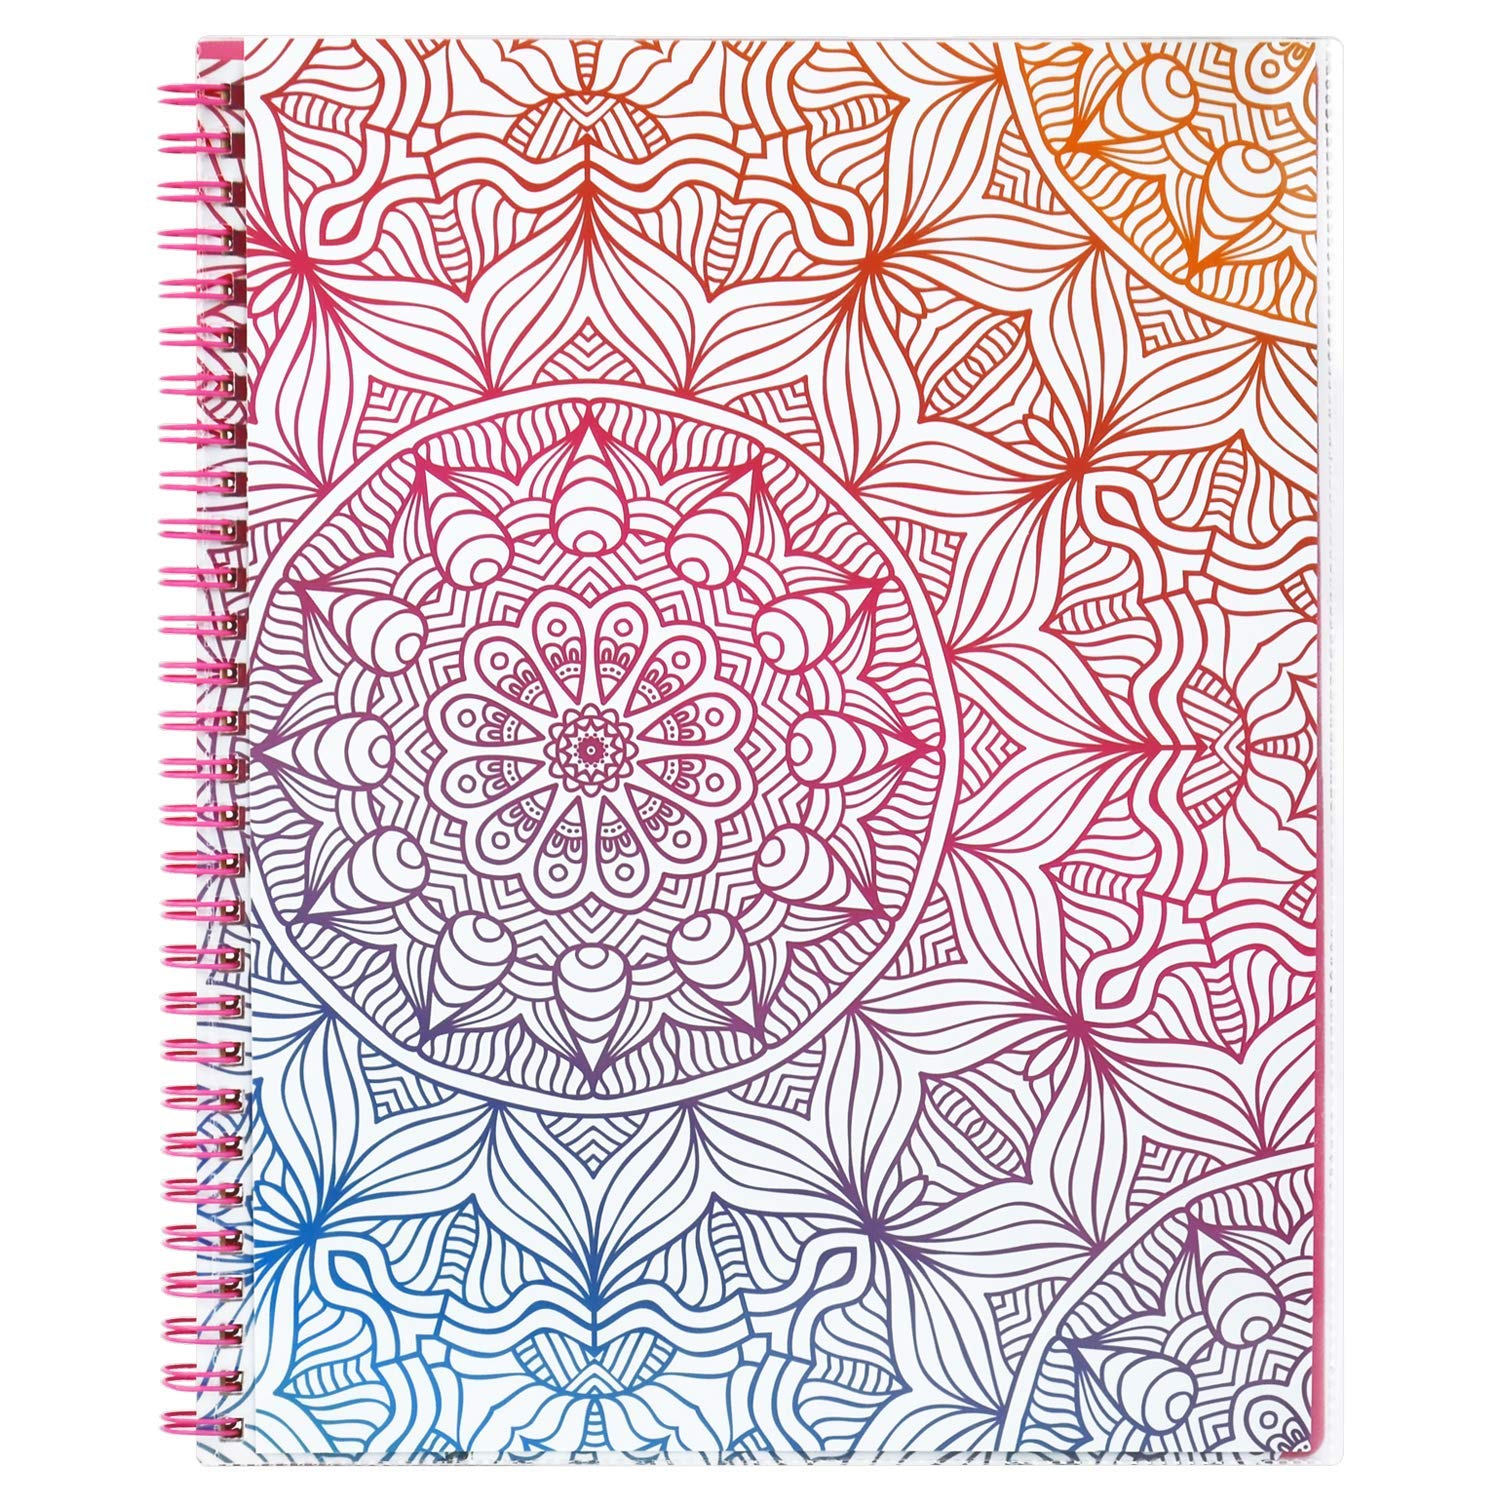 2019 planner with 12 month tabs for 4 59 shipped reg price 7 99